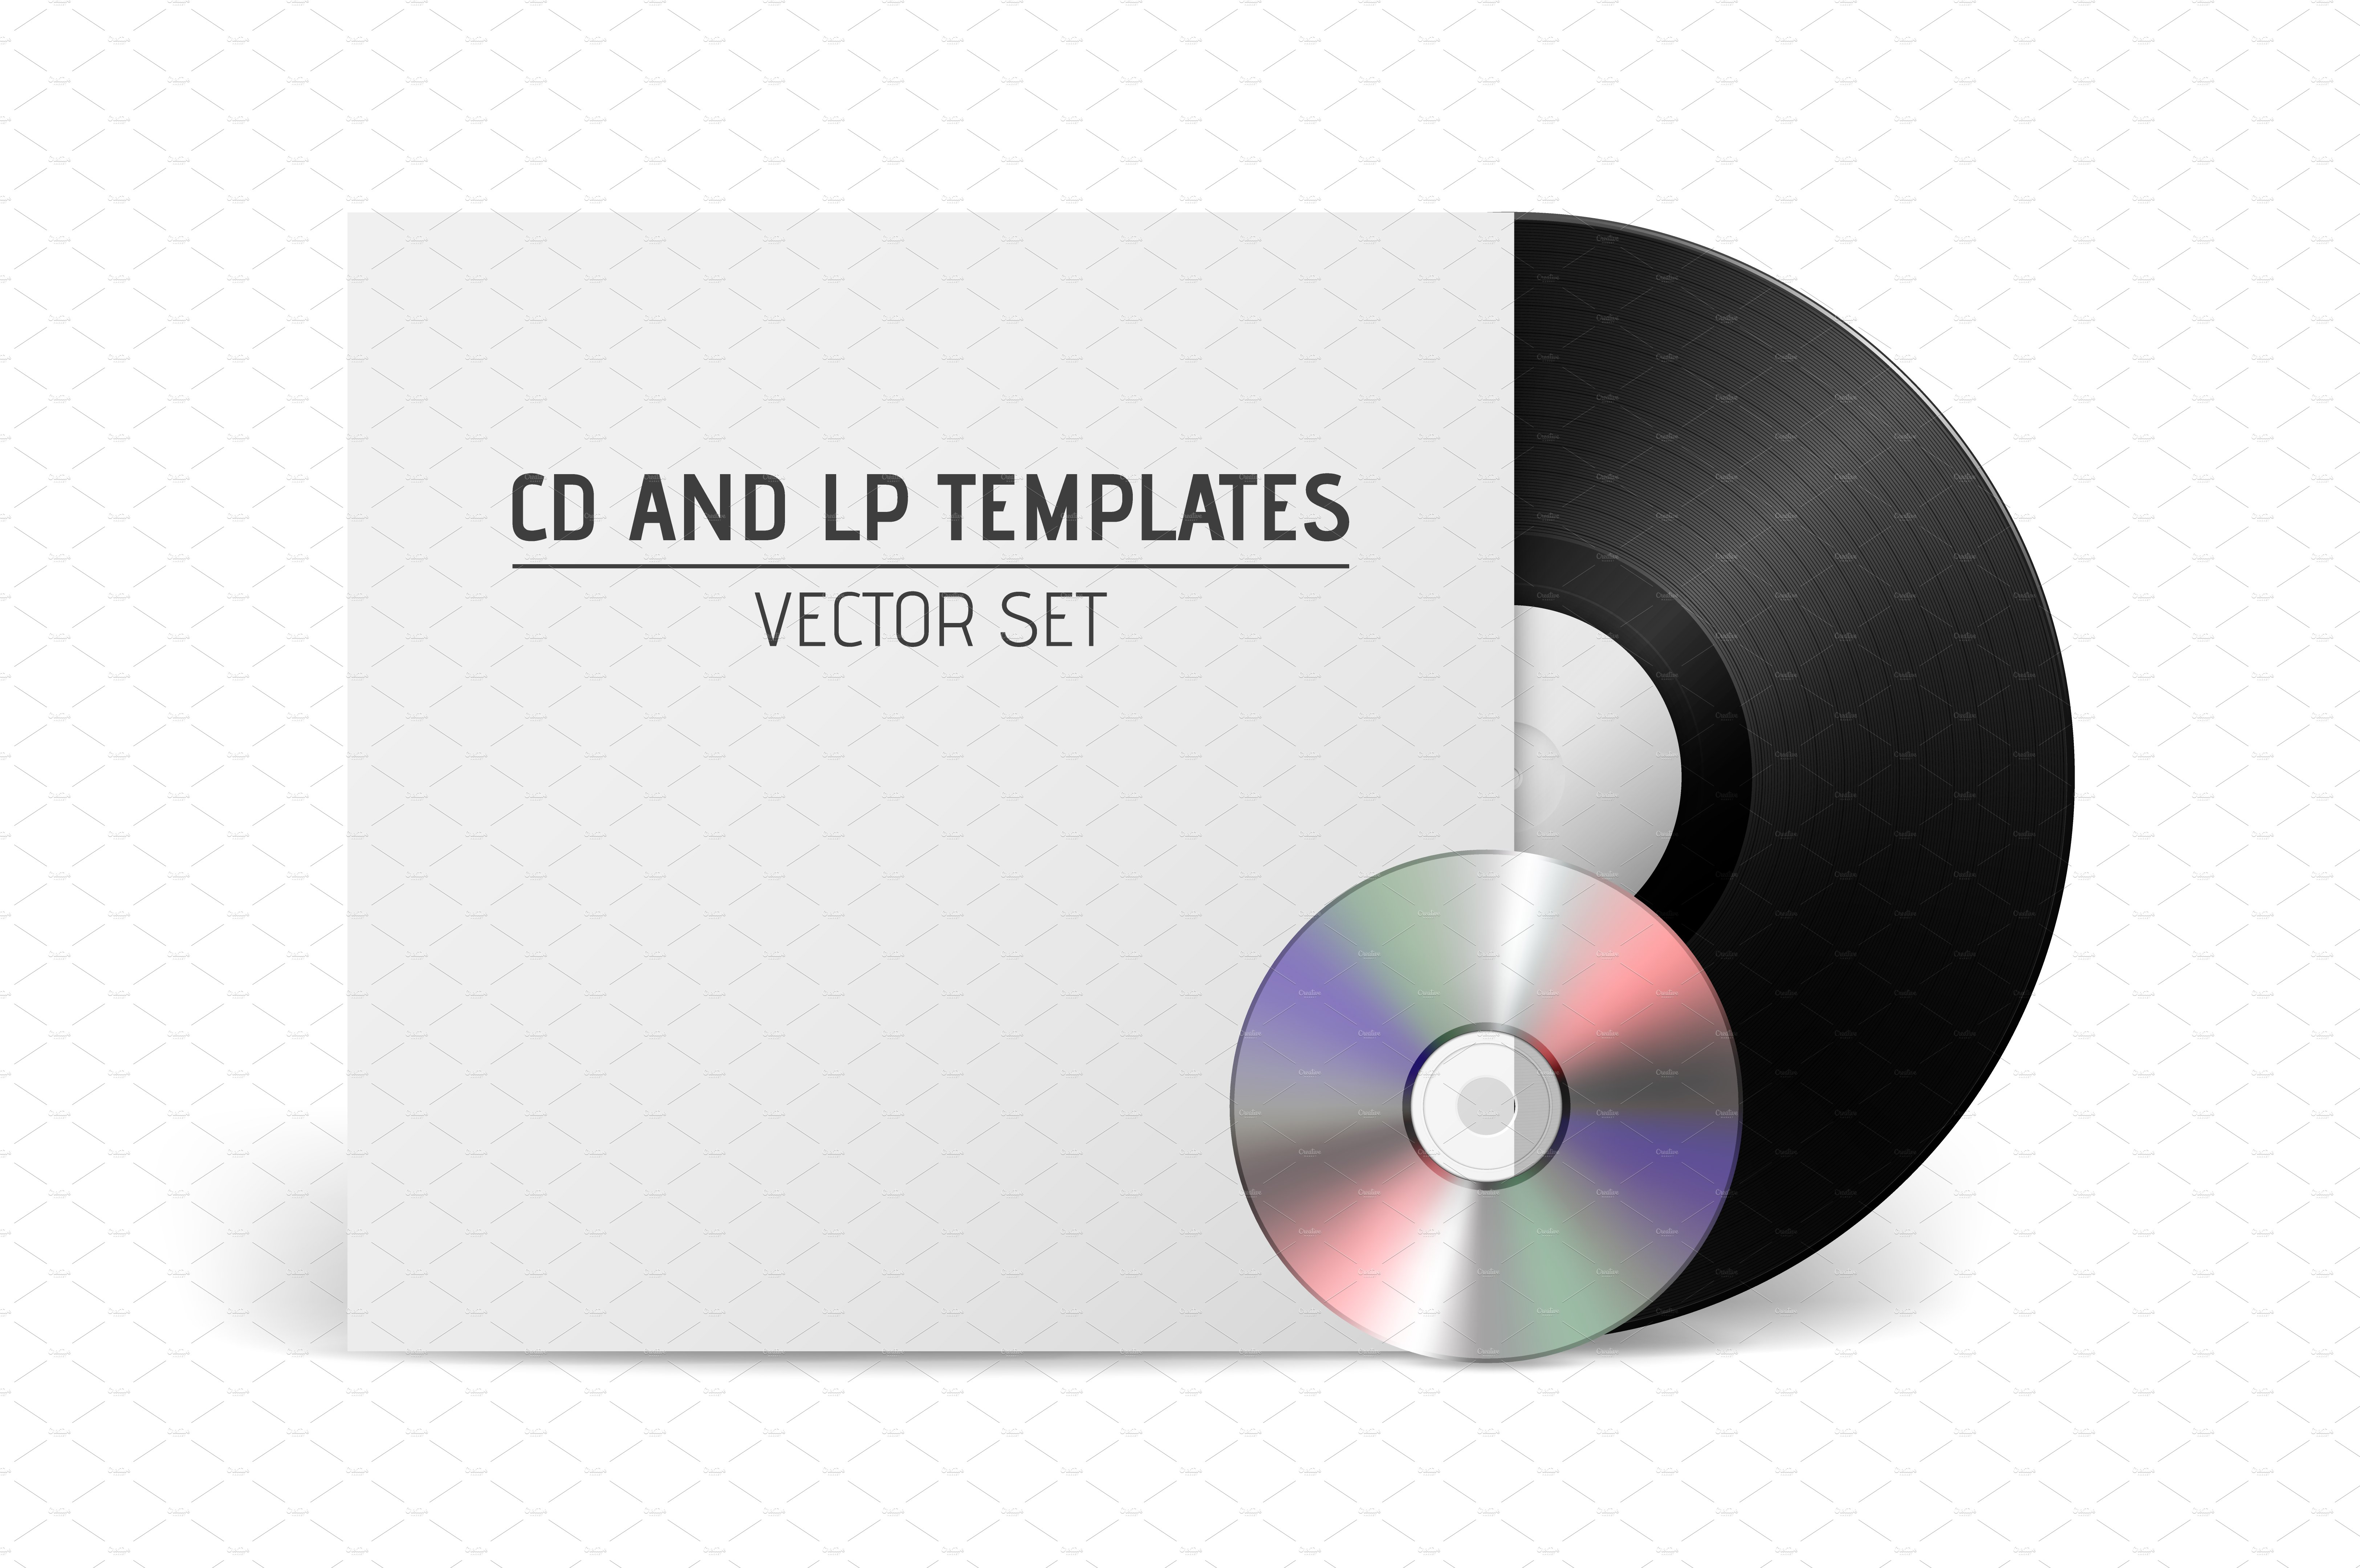 Vector Cd And Lp Templates Illustrations Creative Market